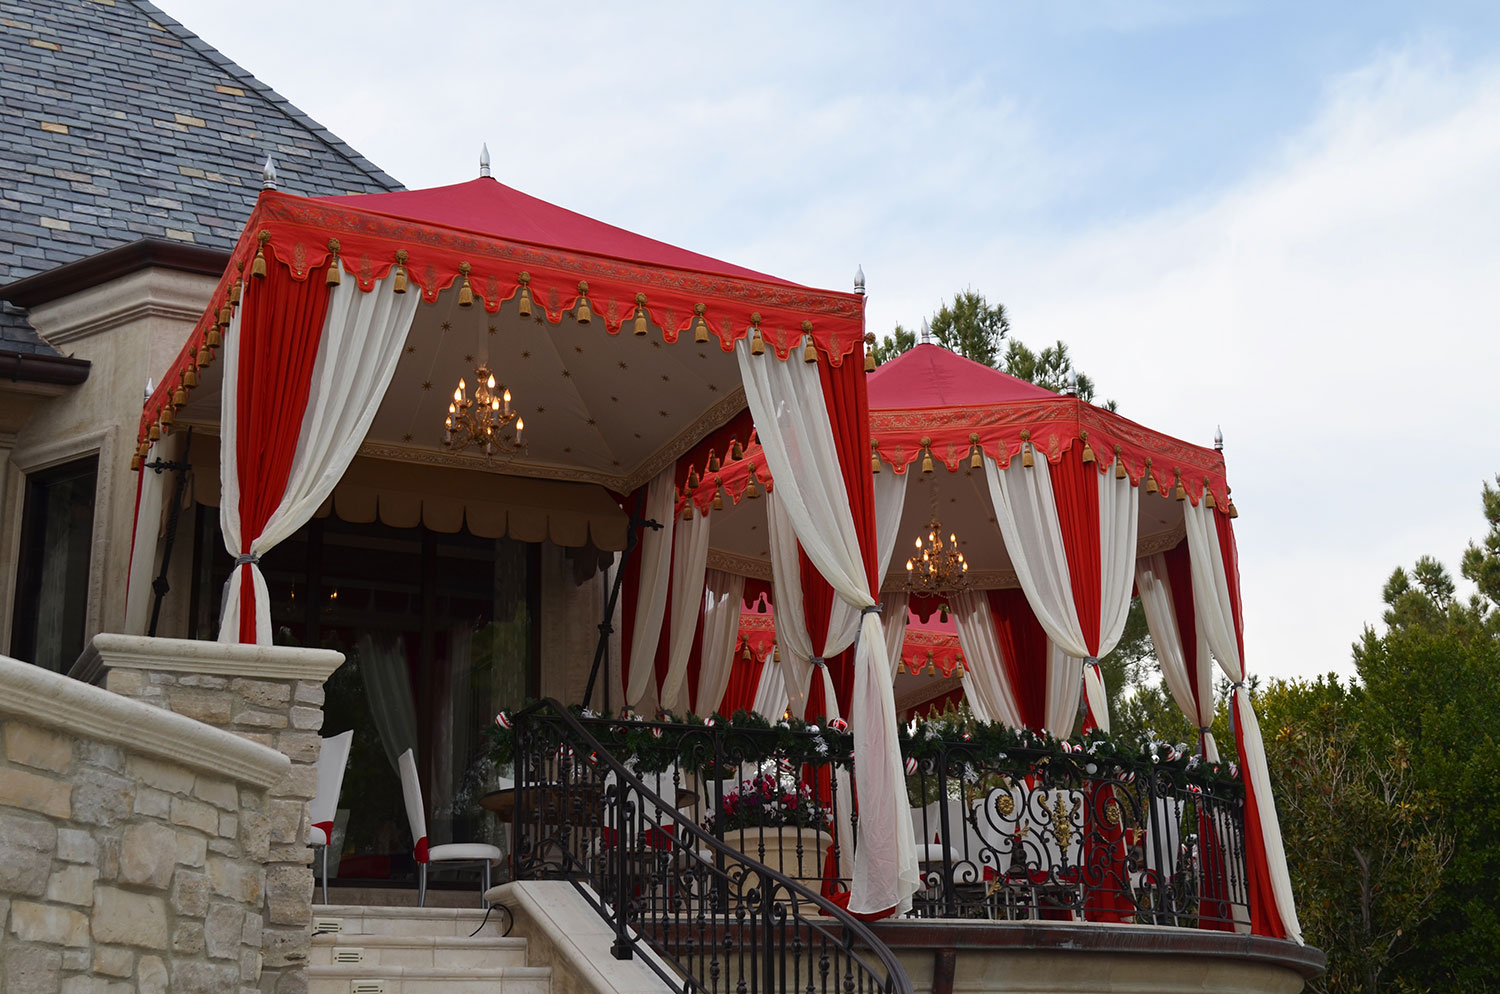 raj-tents-old-hollywood-theme-mansion-tents.jpg